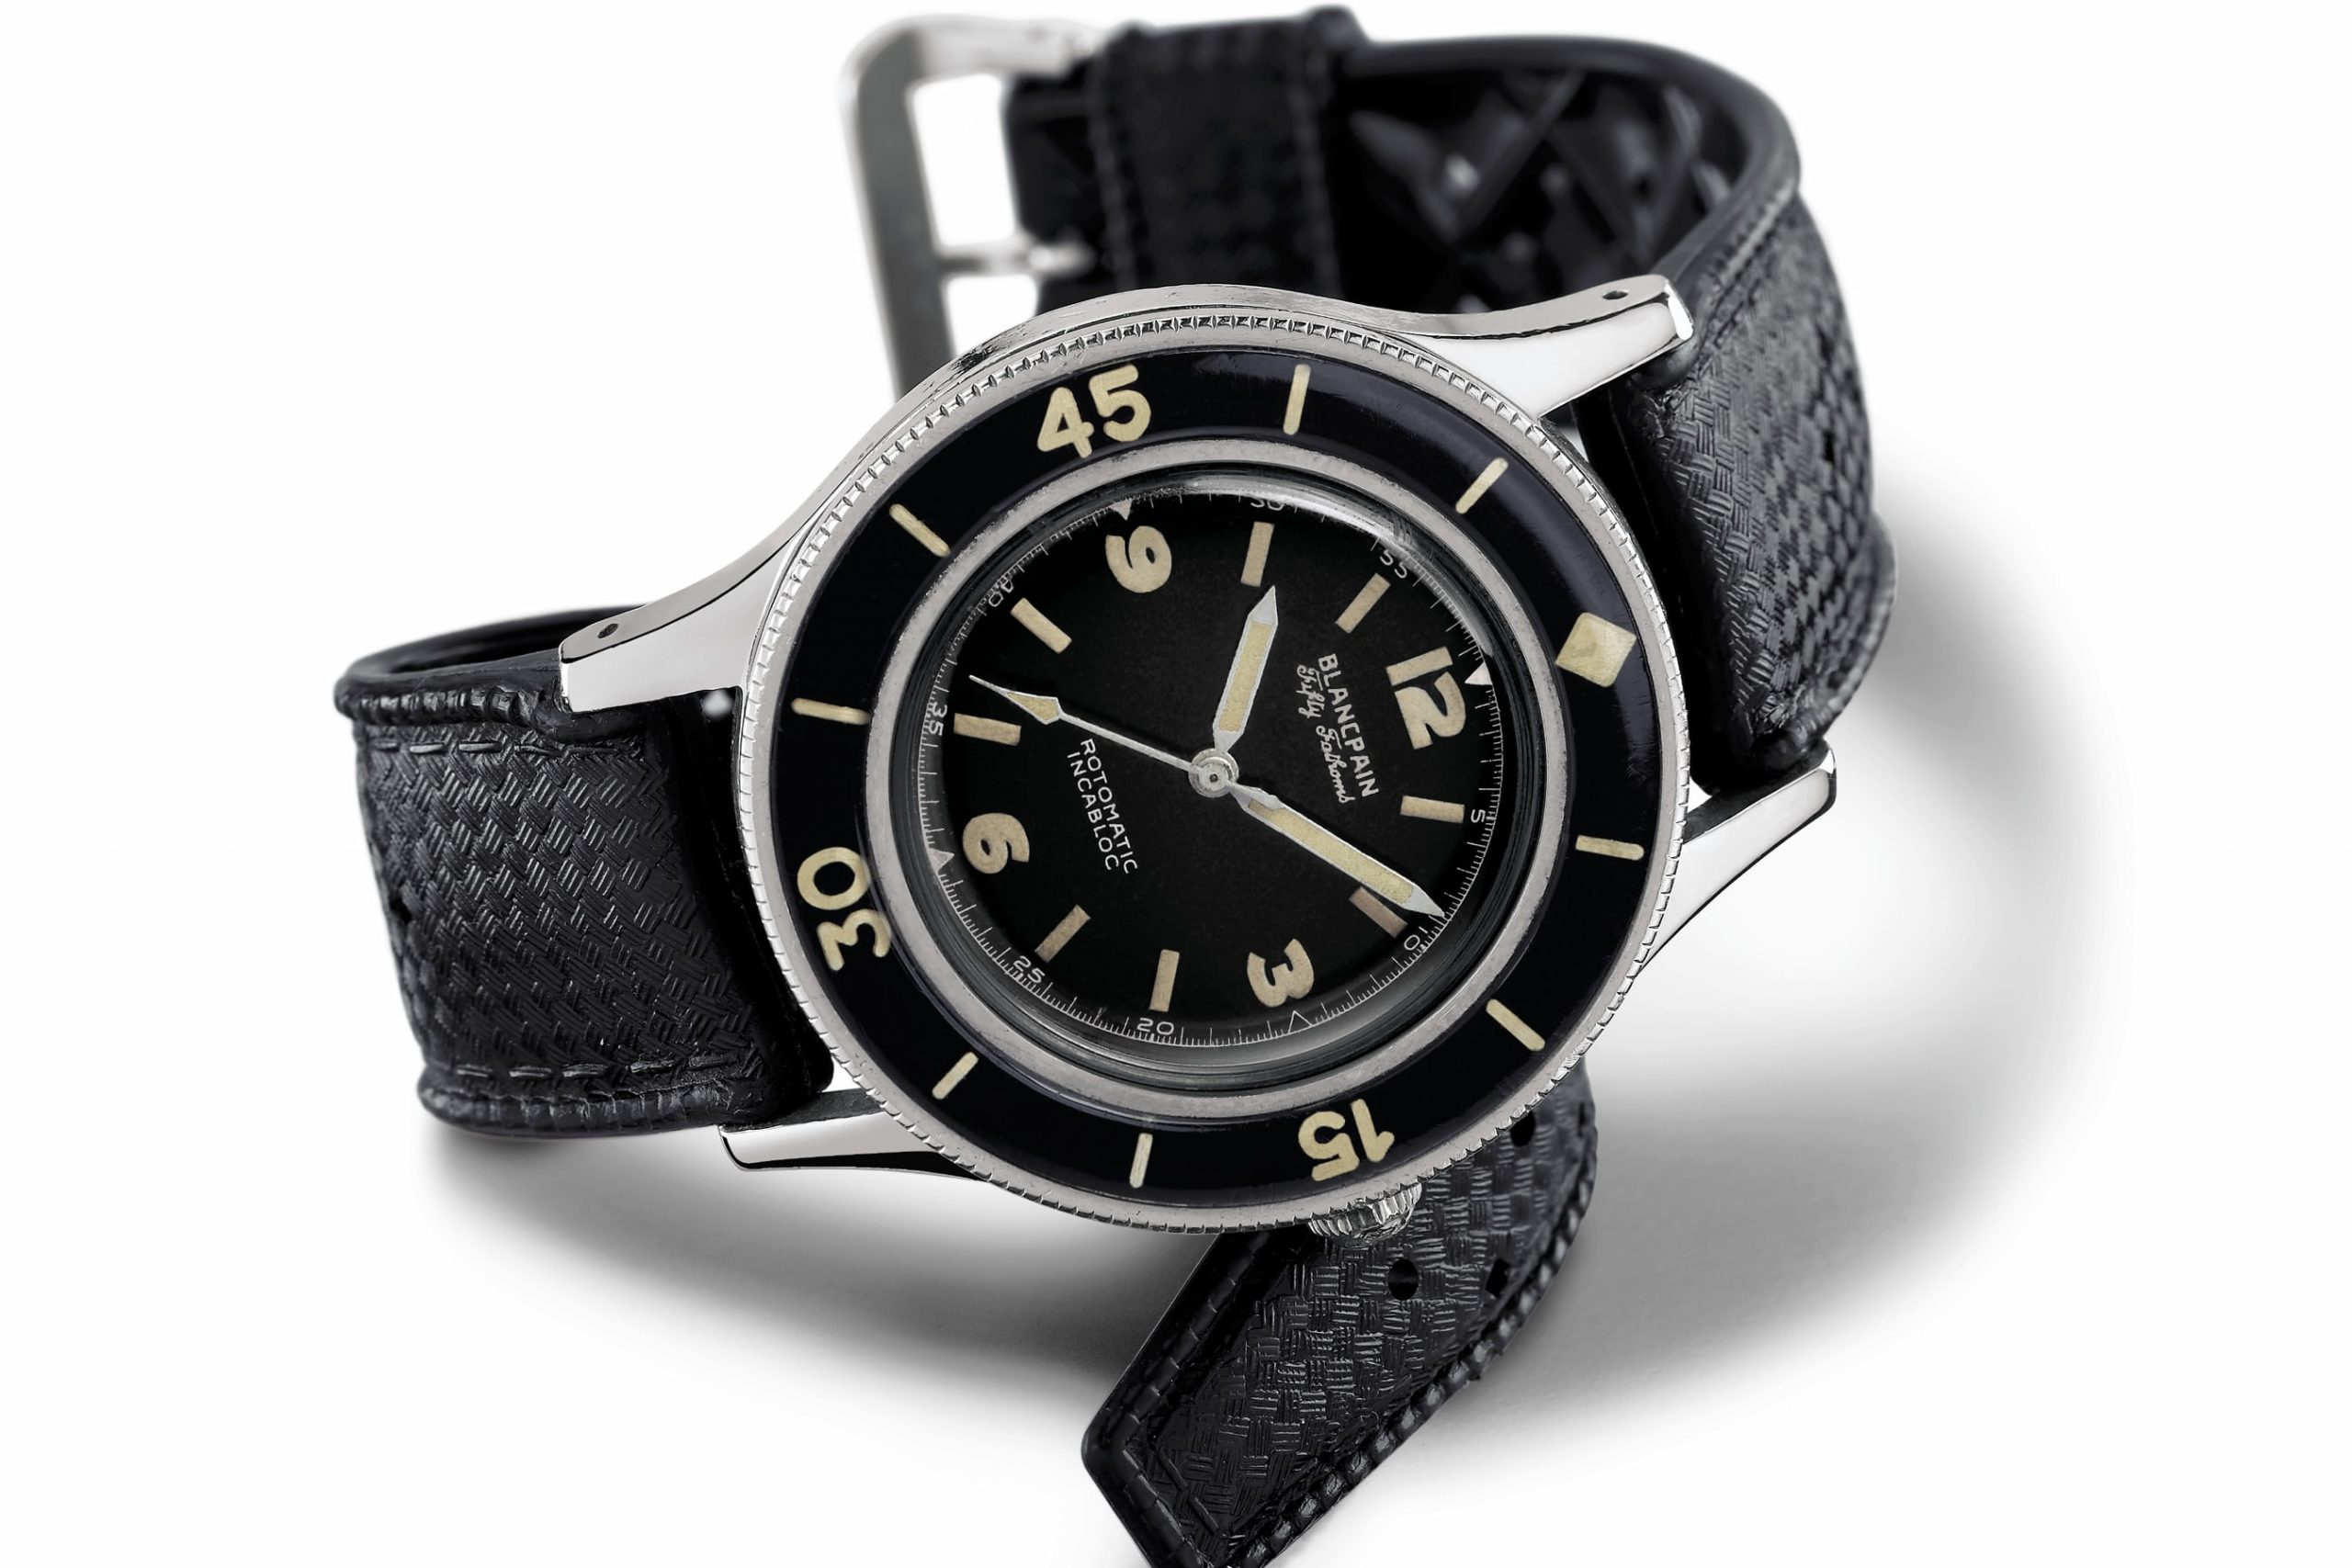 VIDEO: A deep dive with Jeffrey Kingston, the man behind the Blancpain Fifty Fathoms documentary